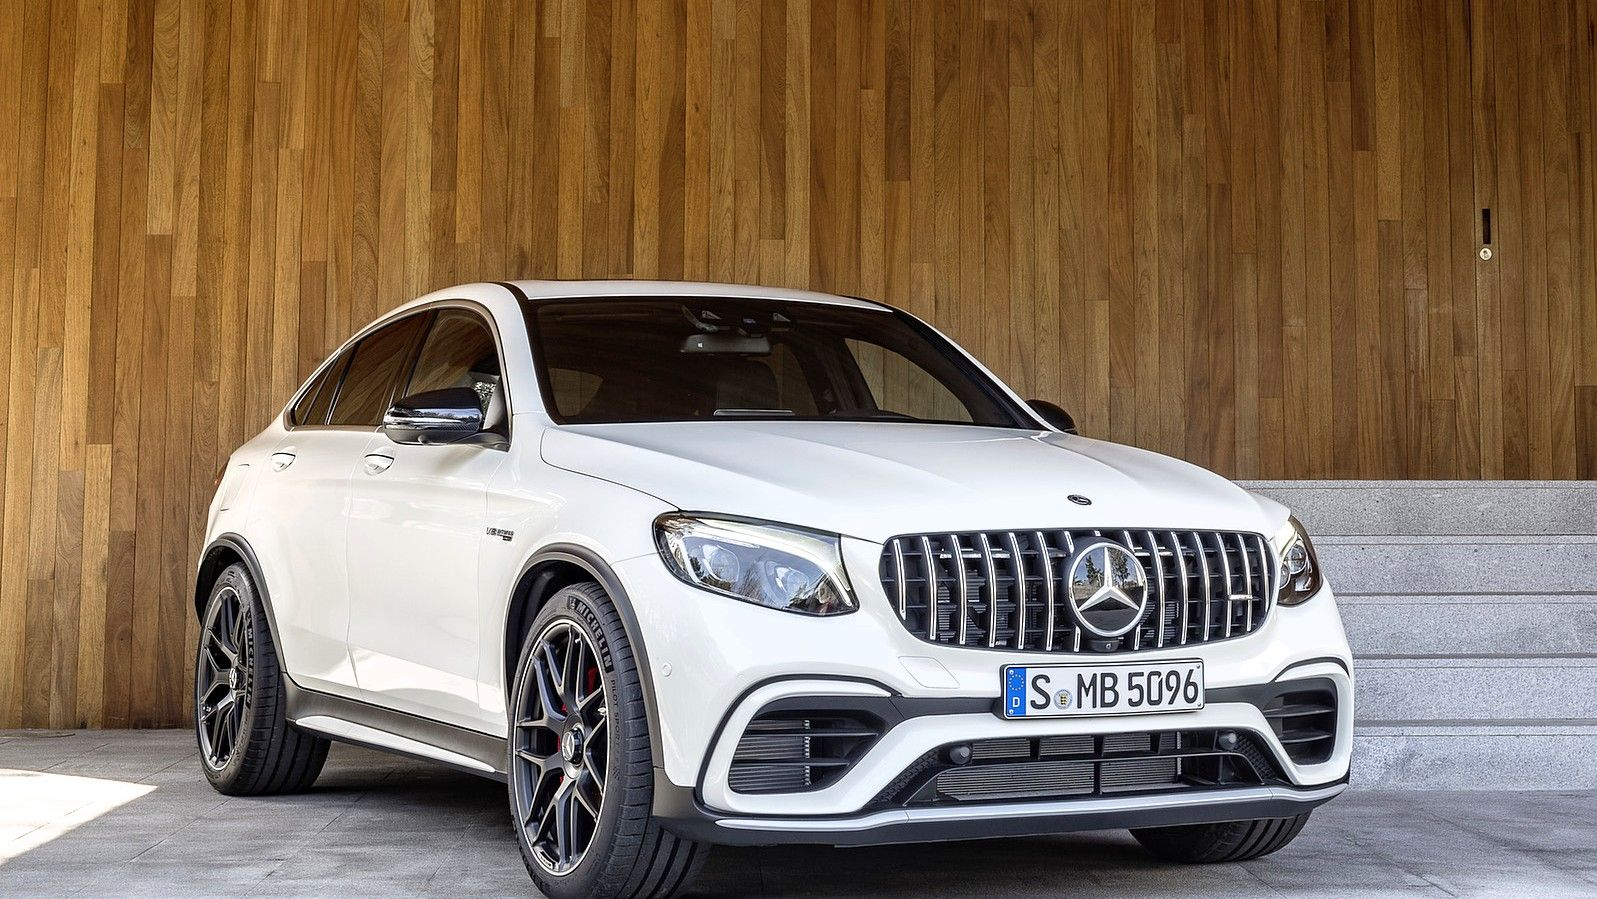 2020 Mercedes AMG GLC 63 Coupe SUV white front three quarters